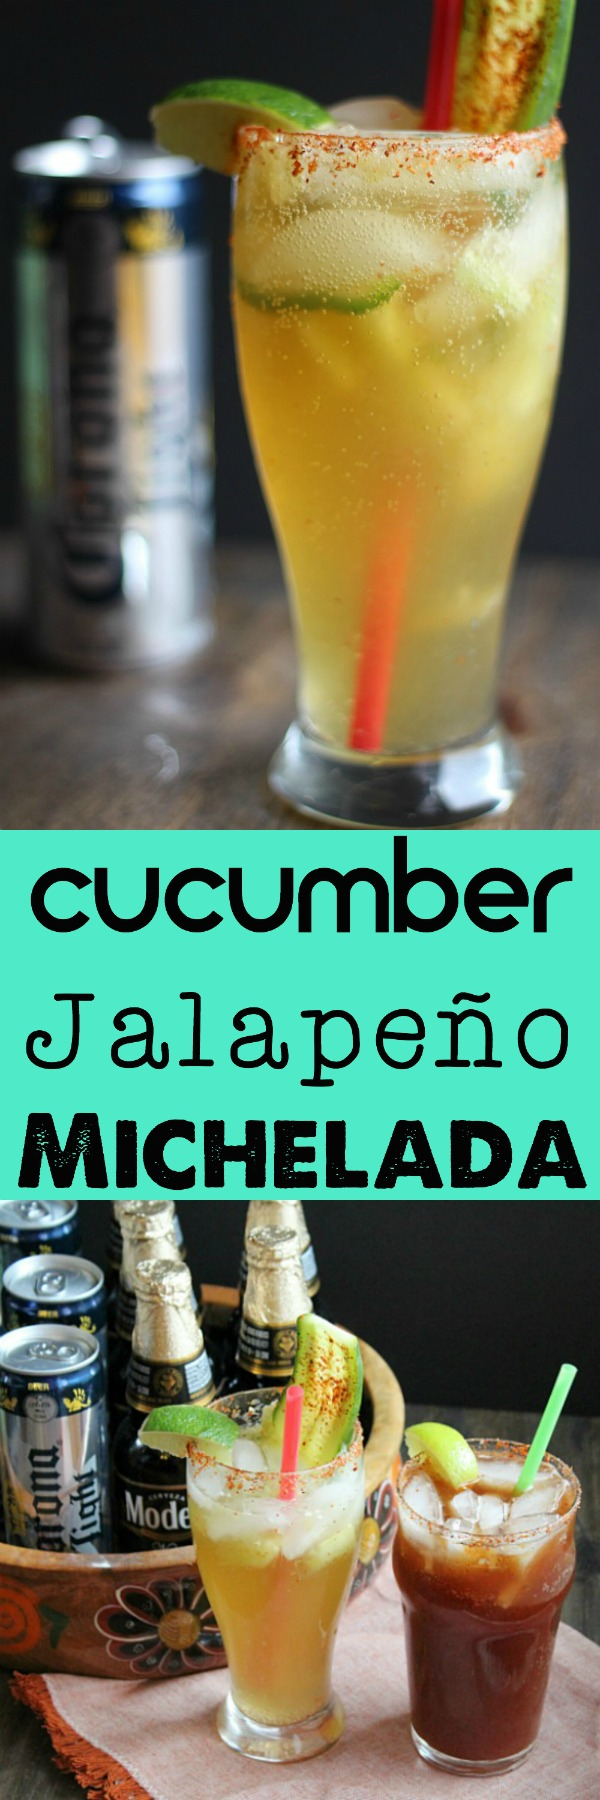 Who says Corona has to be for beaches and sand only? Try this Cucumber Jalapeño Michelada anytime! Delish! via @DashOfEvans #CervezaCelebration